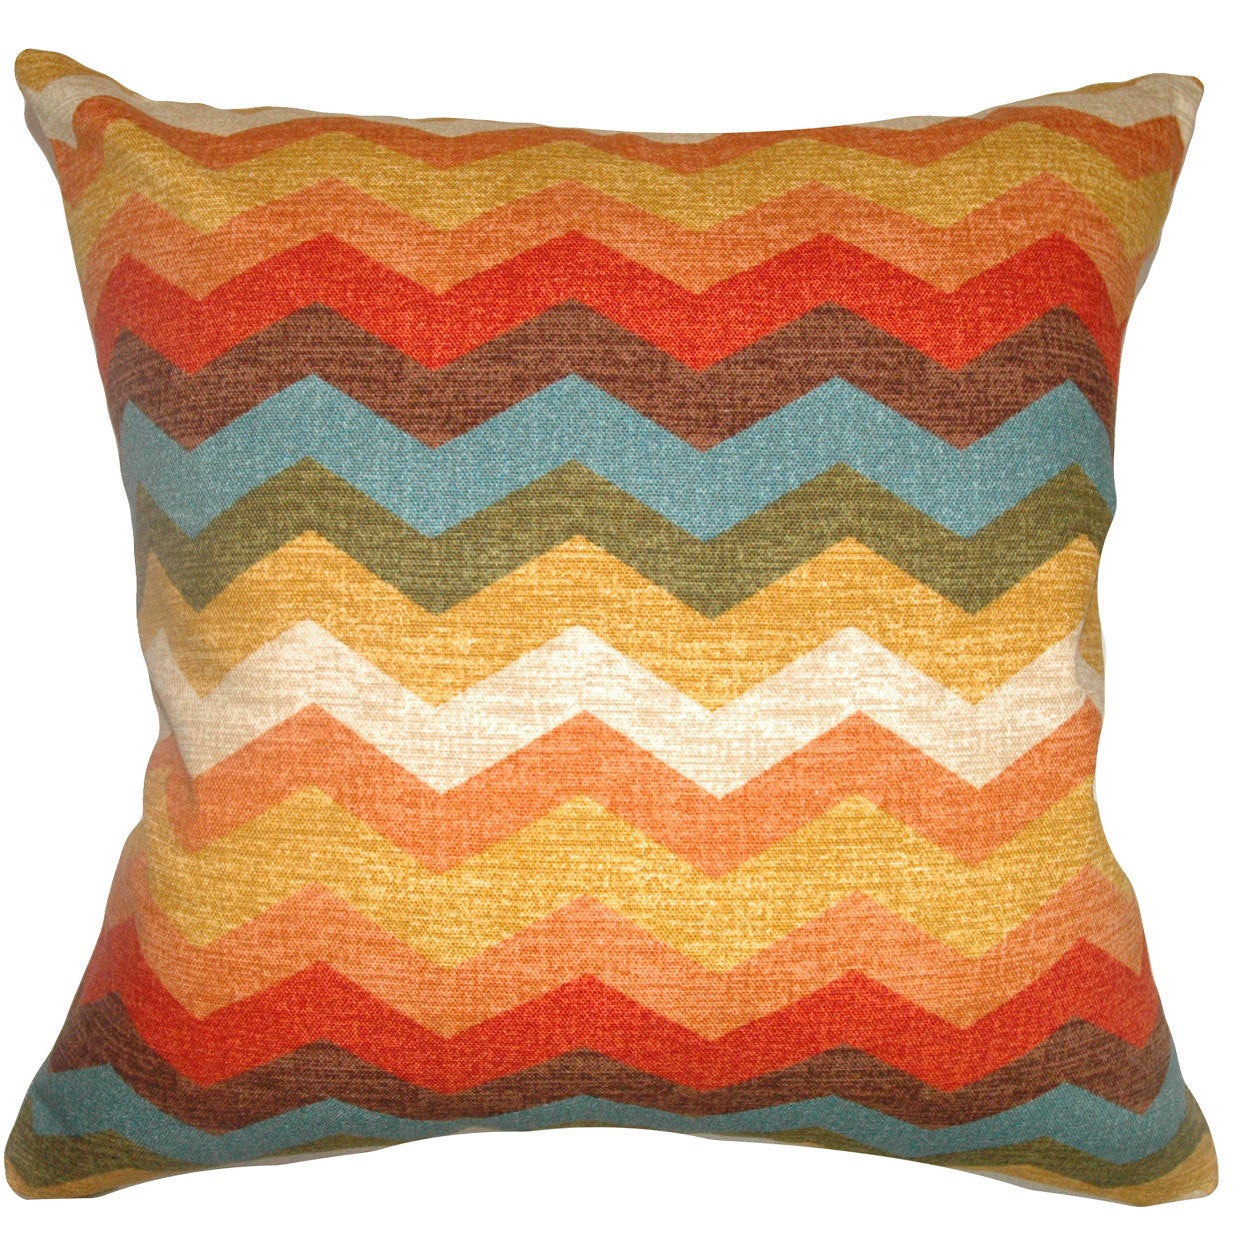 Gail Zigzag Throw Pillow Cover (Size)